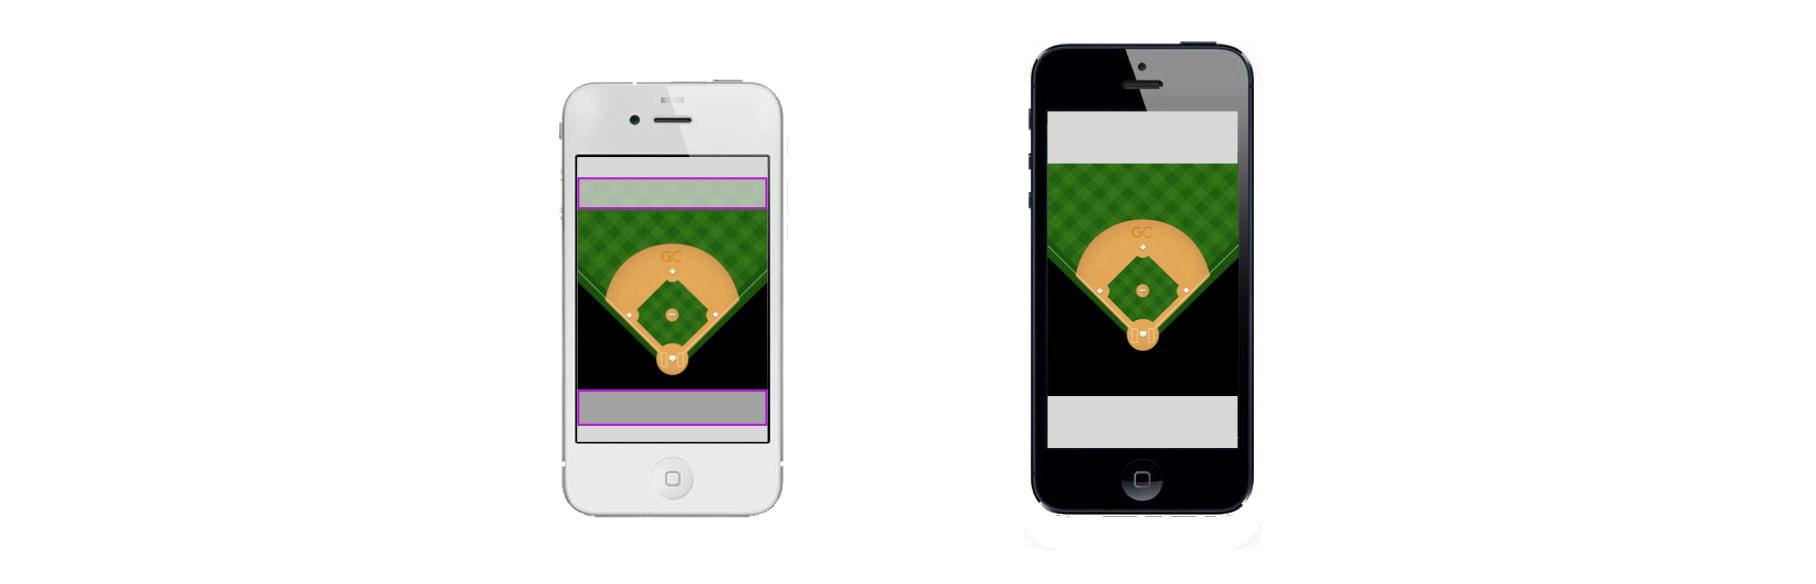 Iphone 5 real size png image. Building a baseball field